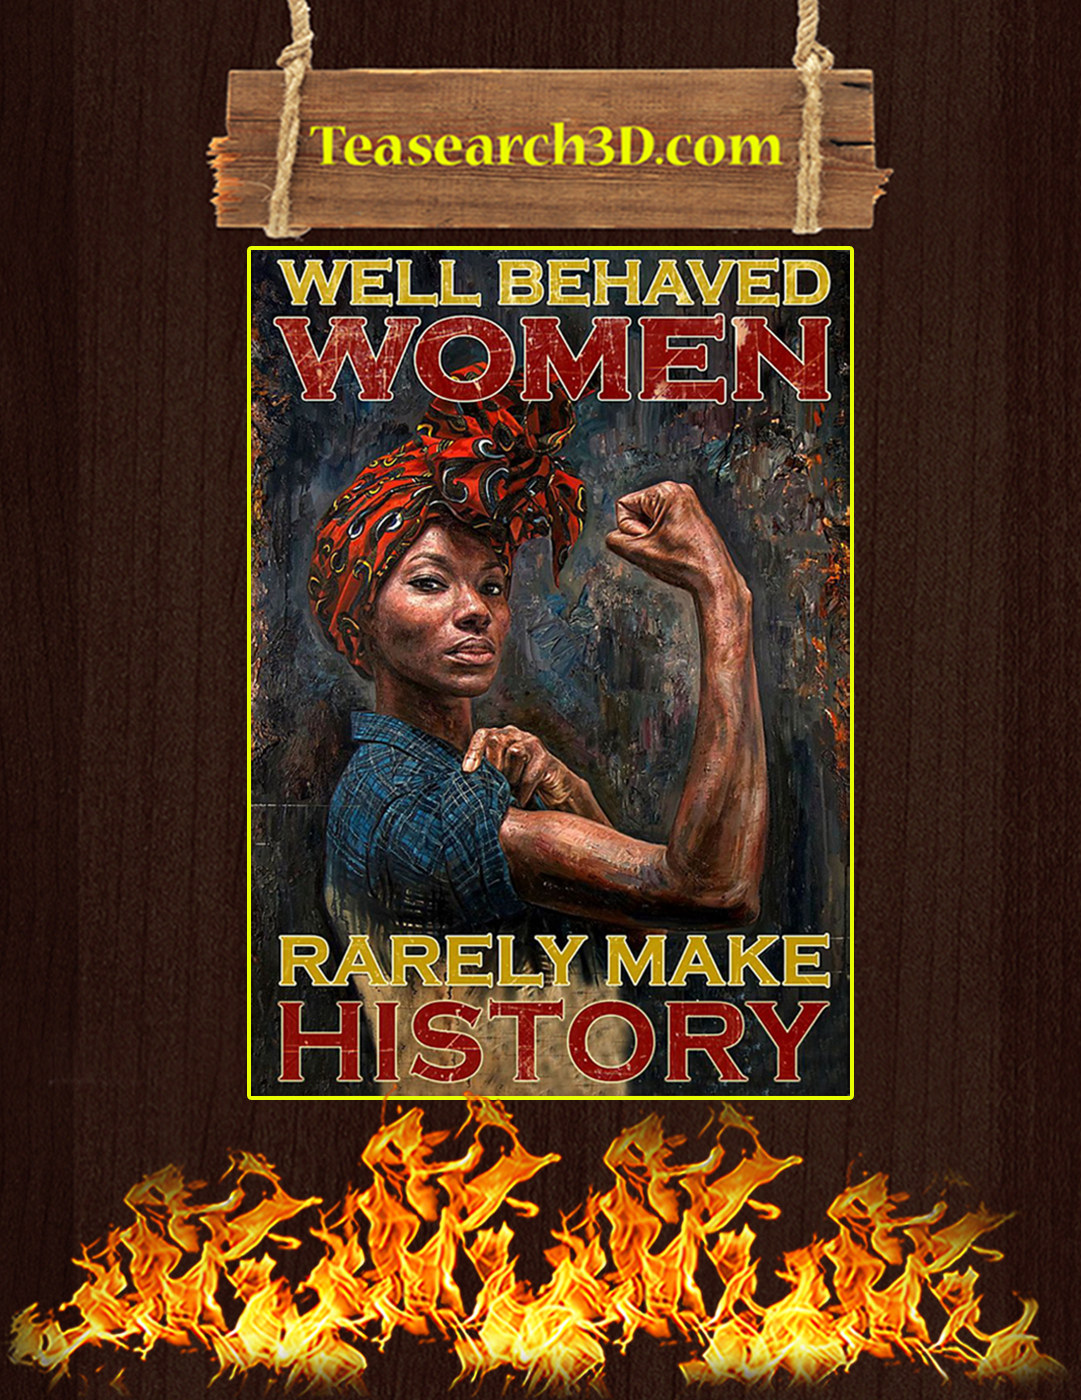 Well behaved black women rarely make history poster A2